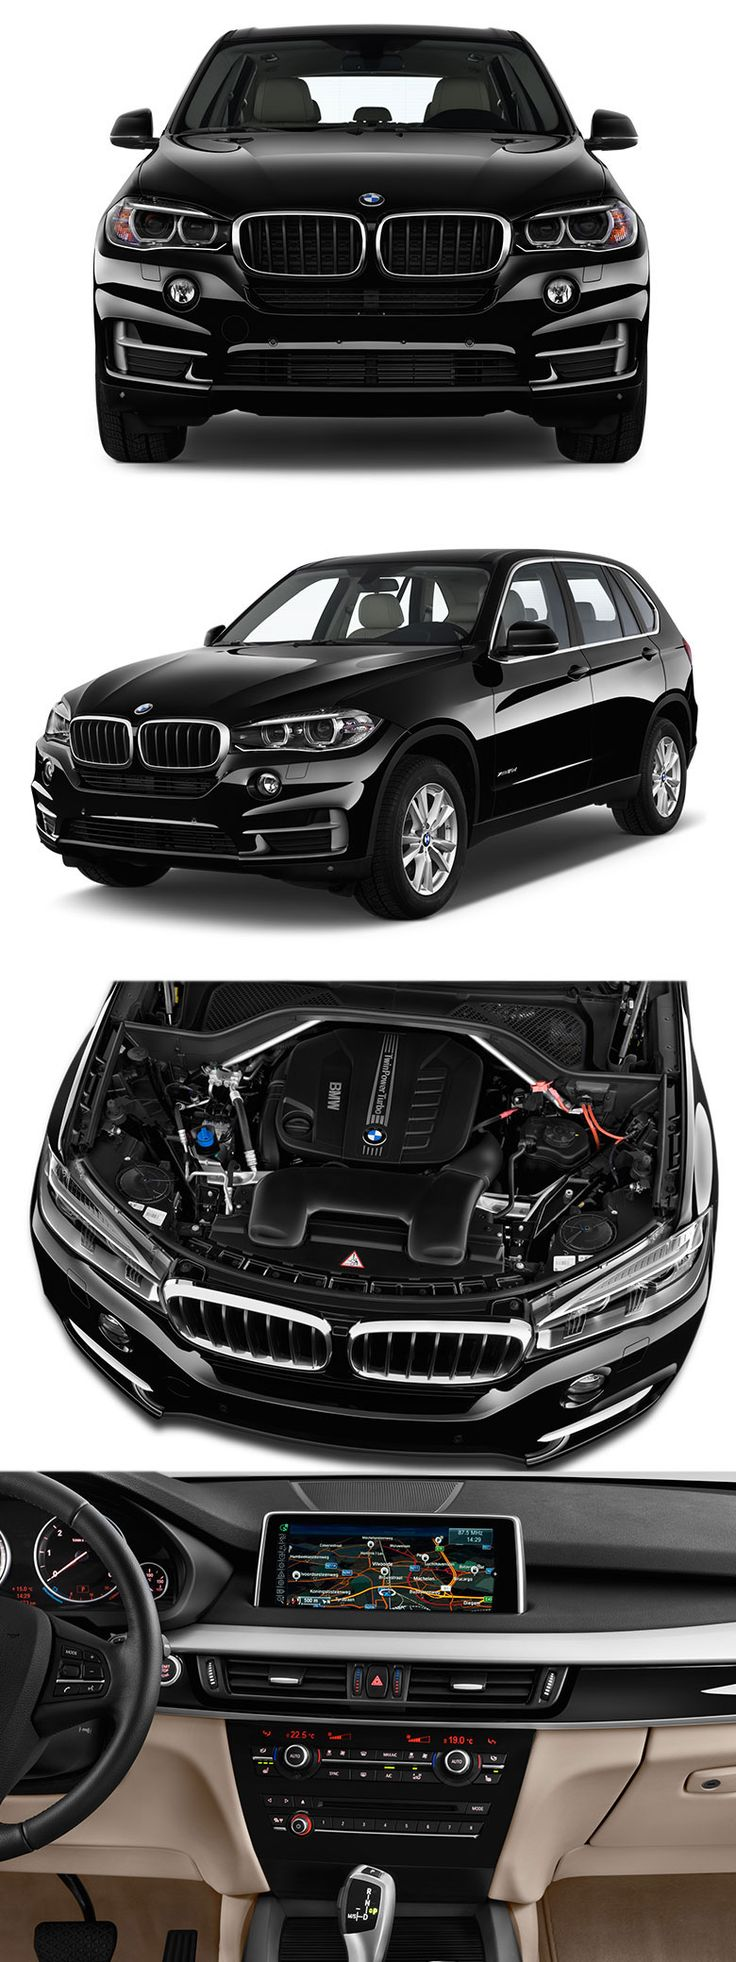 BMW X5 Strong Engine and Luxurious Comfort https://www.enginetrust.co.uk/blog/category/bmw/